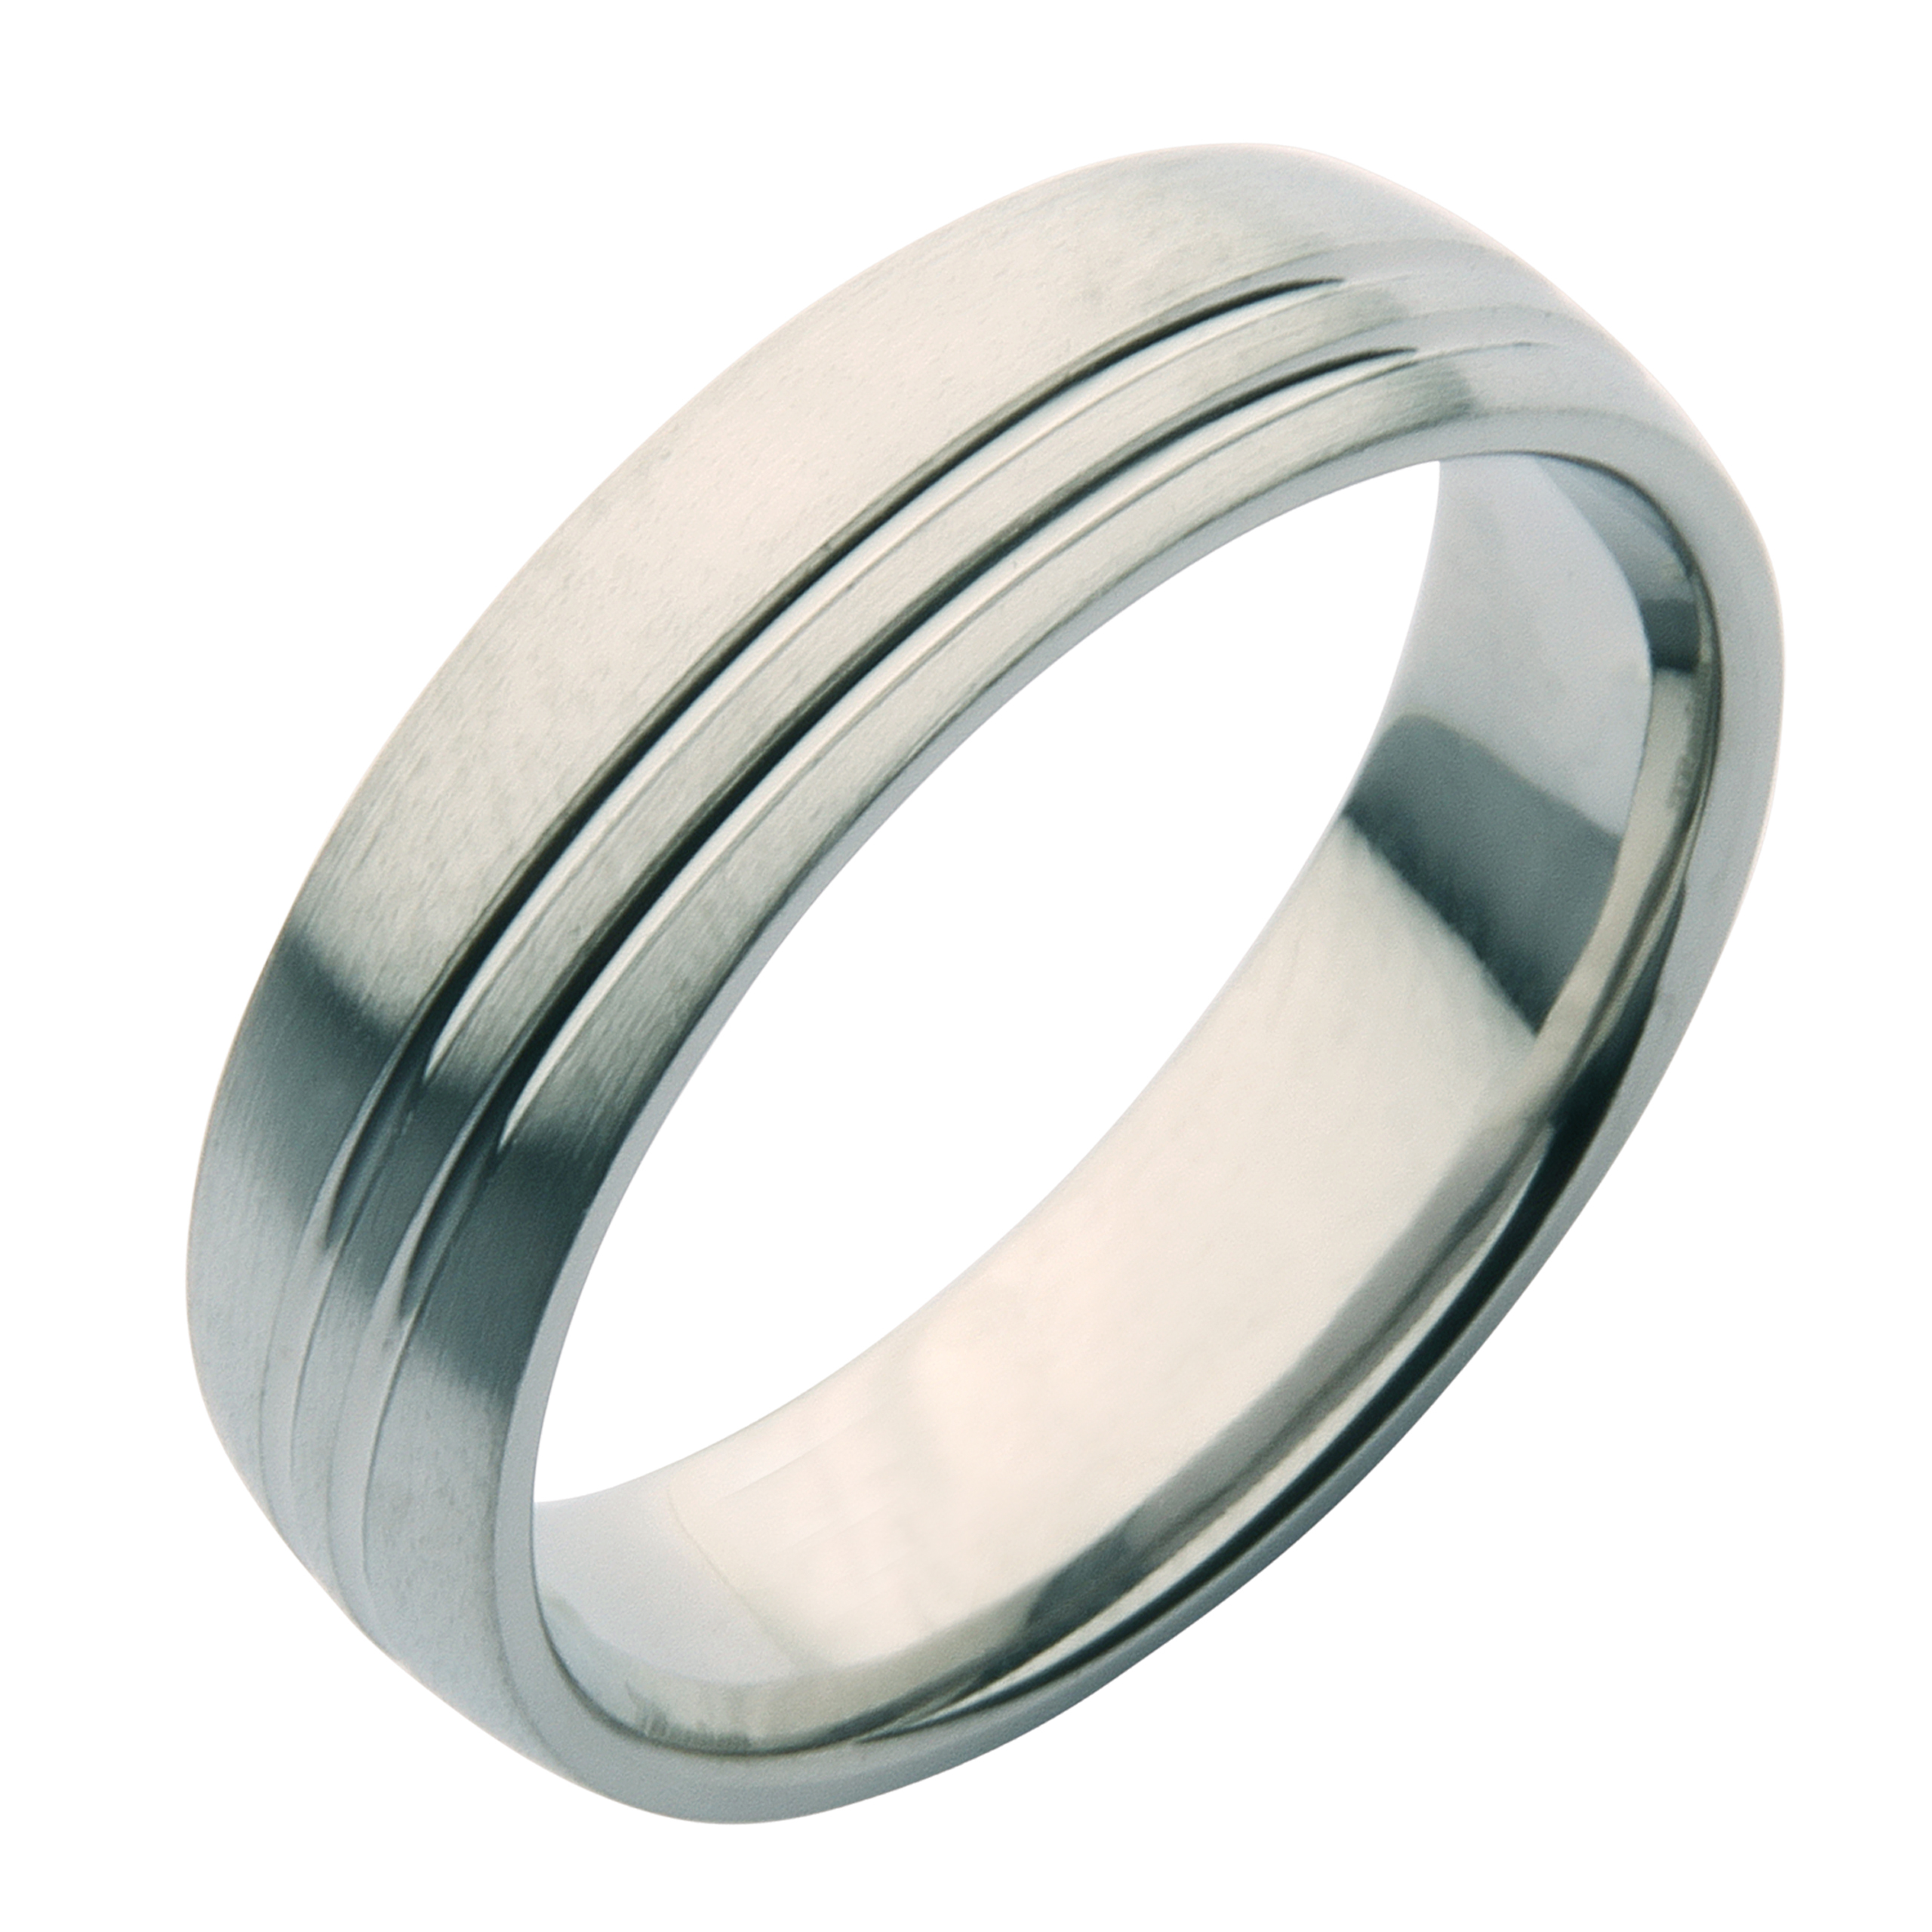 6mm Cobalt Grooved Patterned Wedding Ring Band